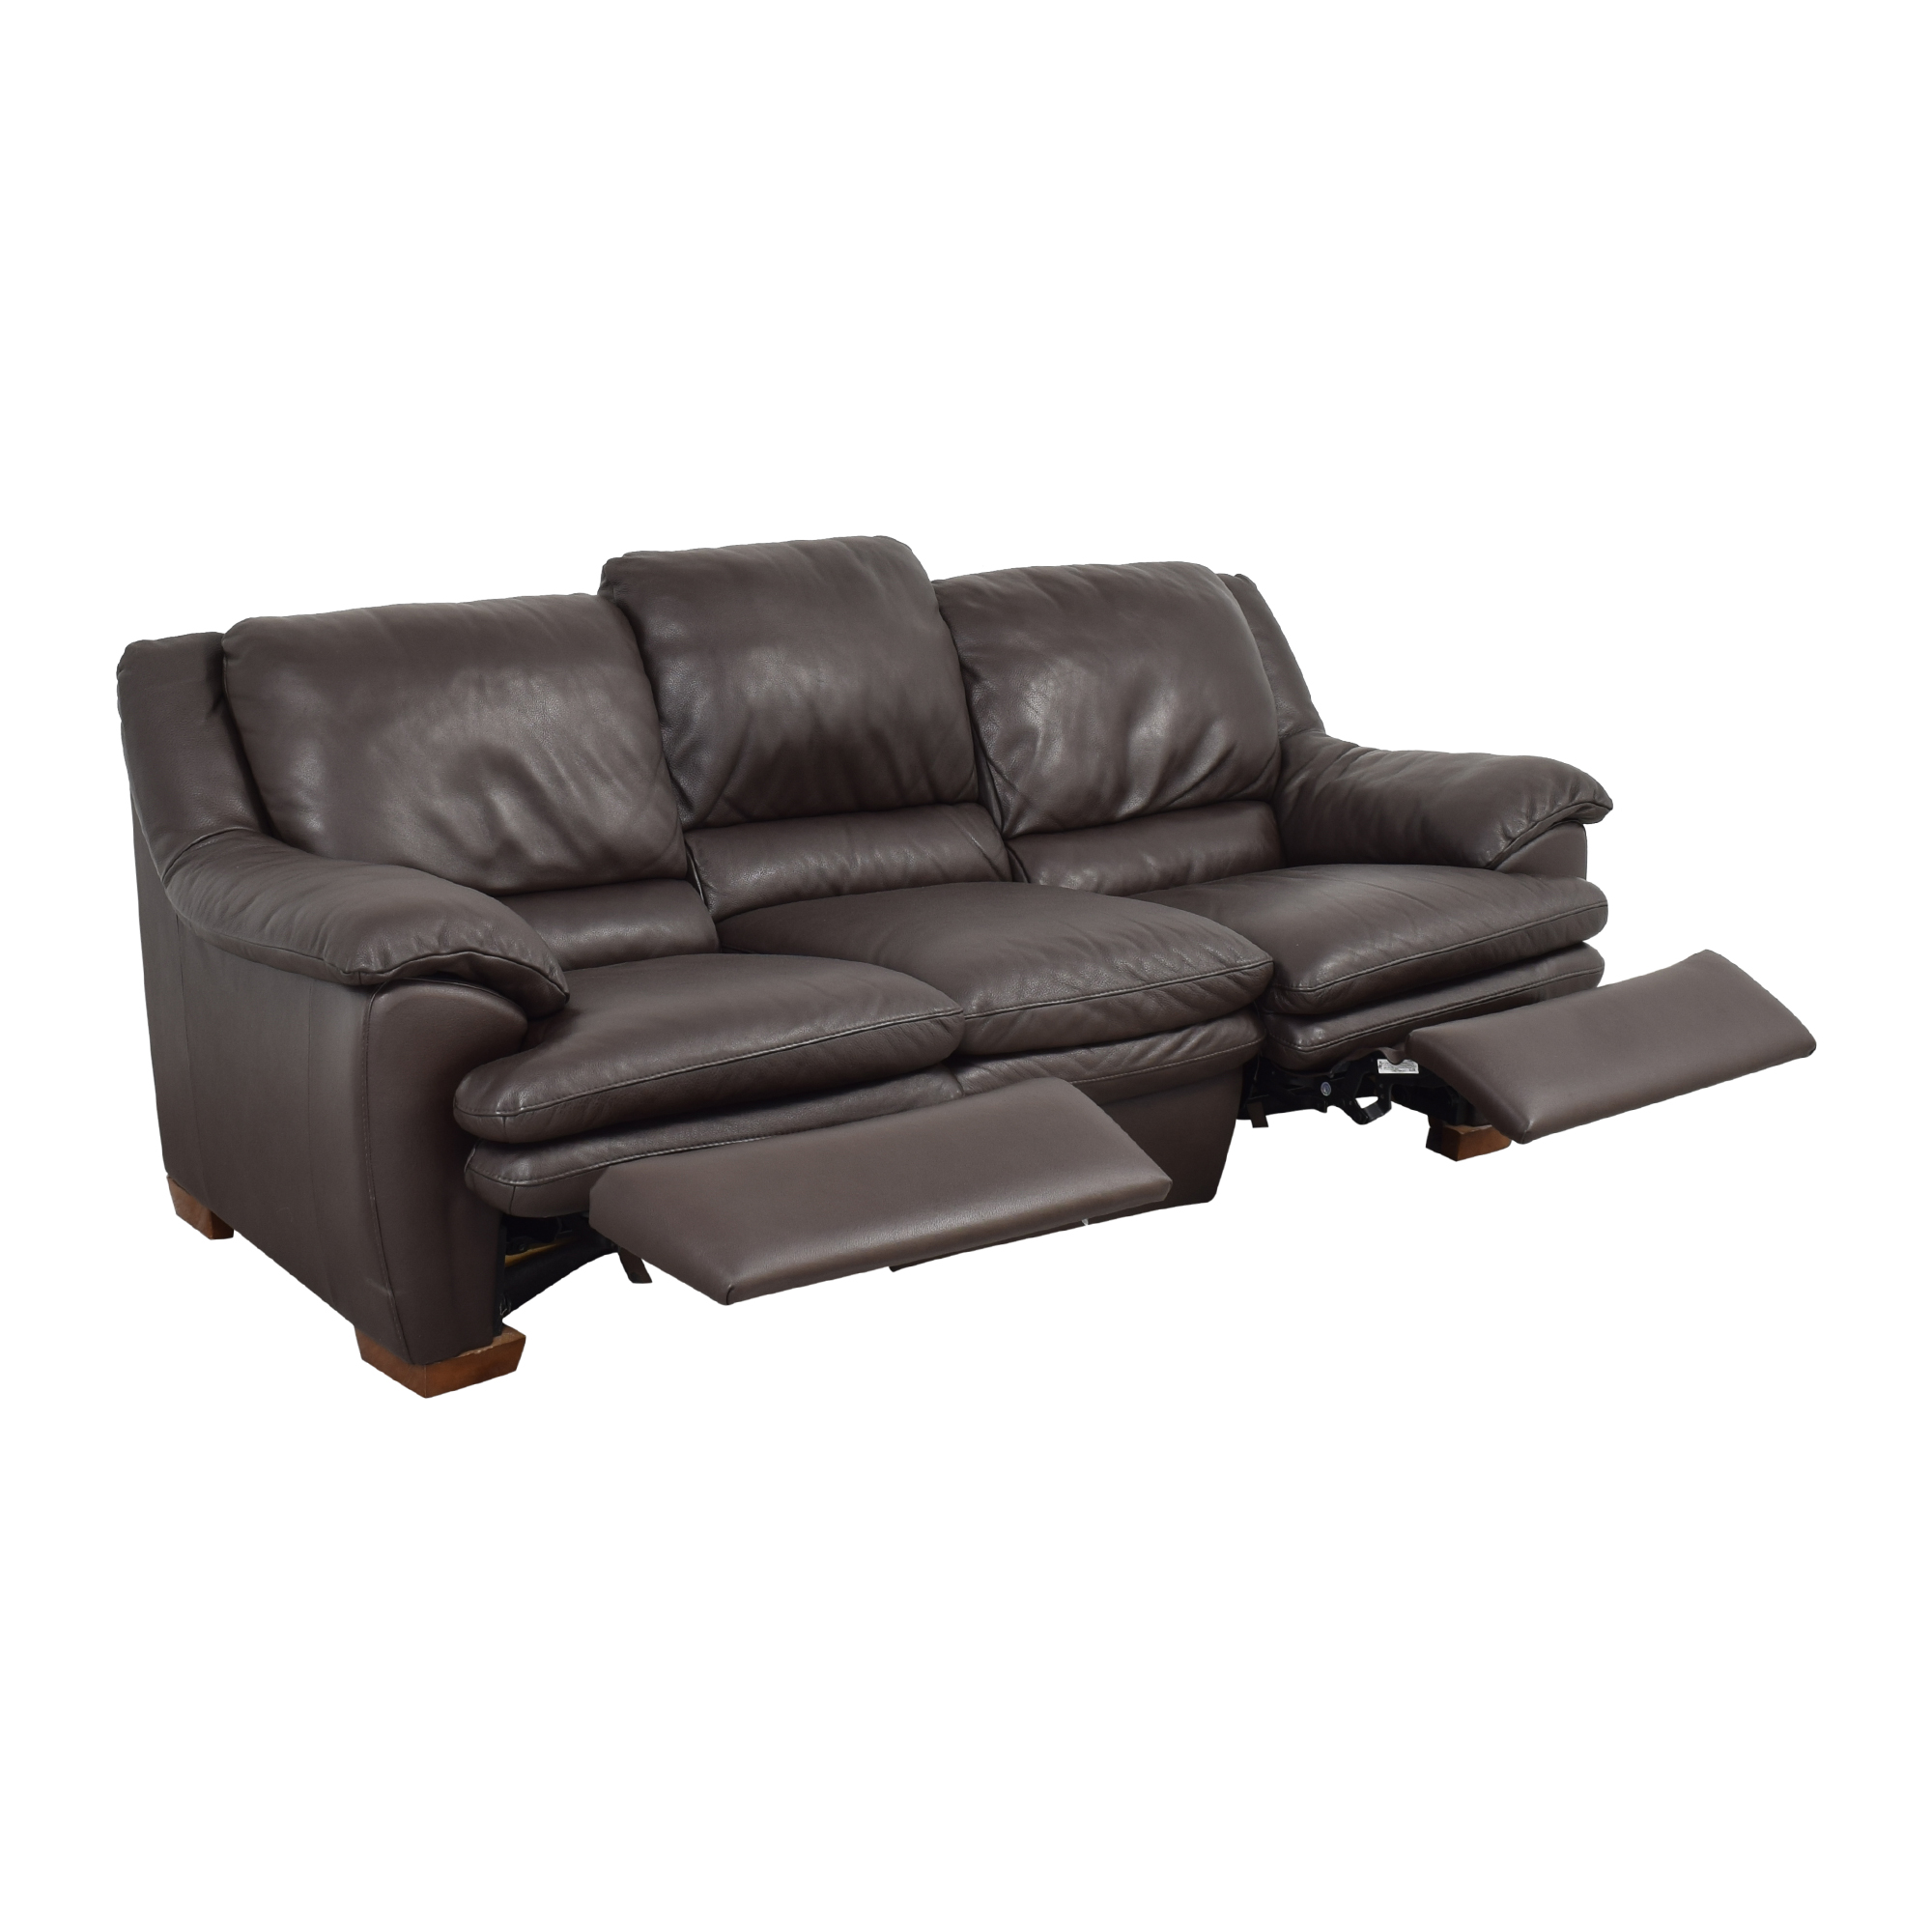 Raymour & Flanigan Raymour & Flanigan Natuzzi Reclining Sofa on sale